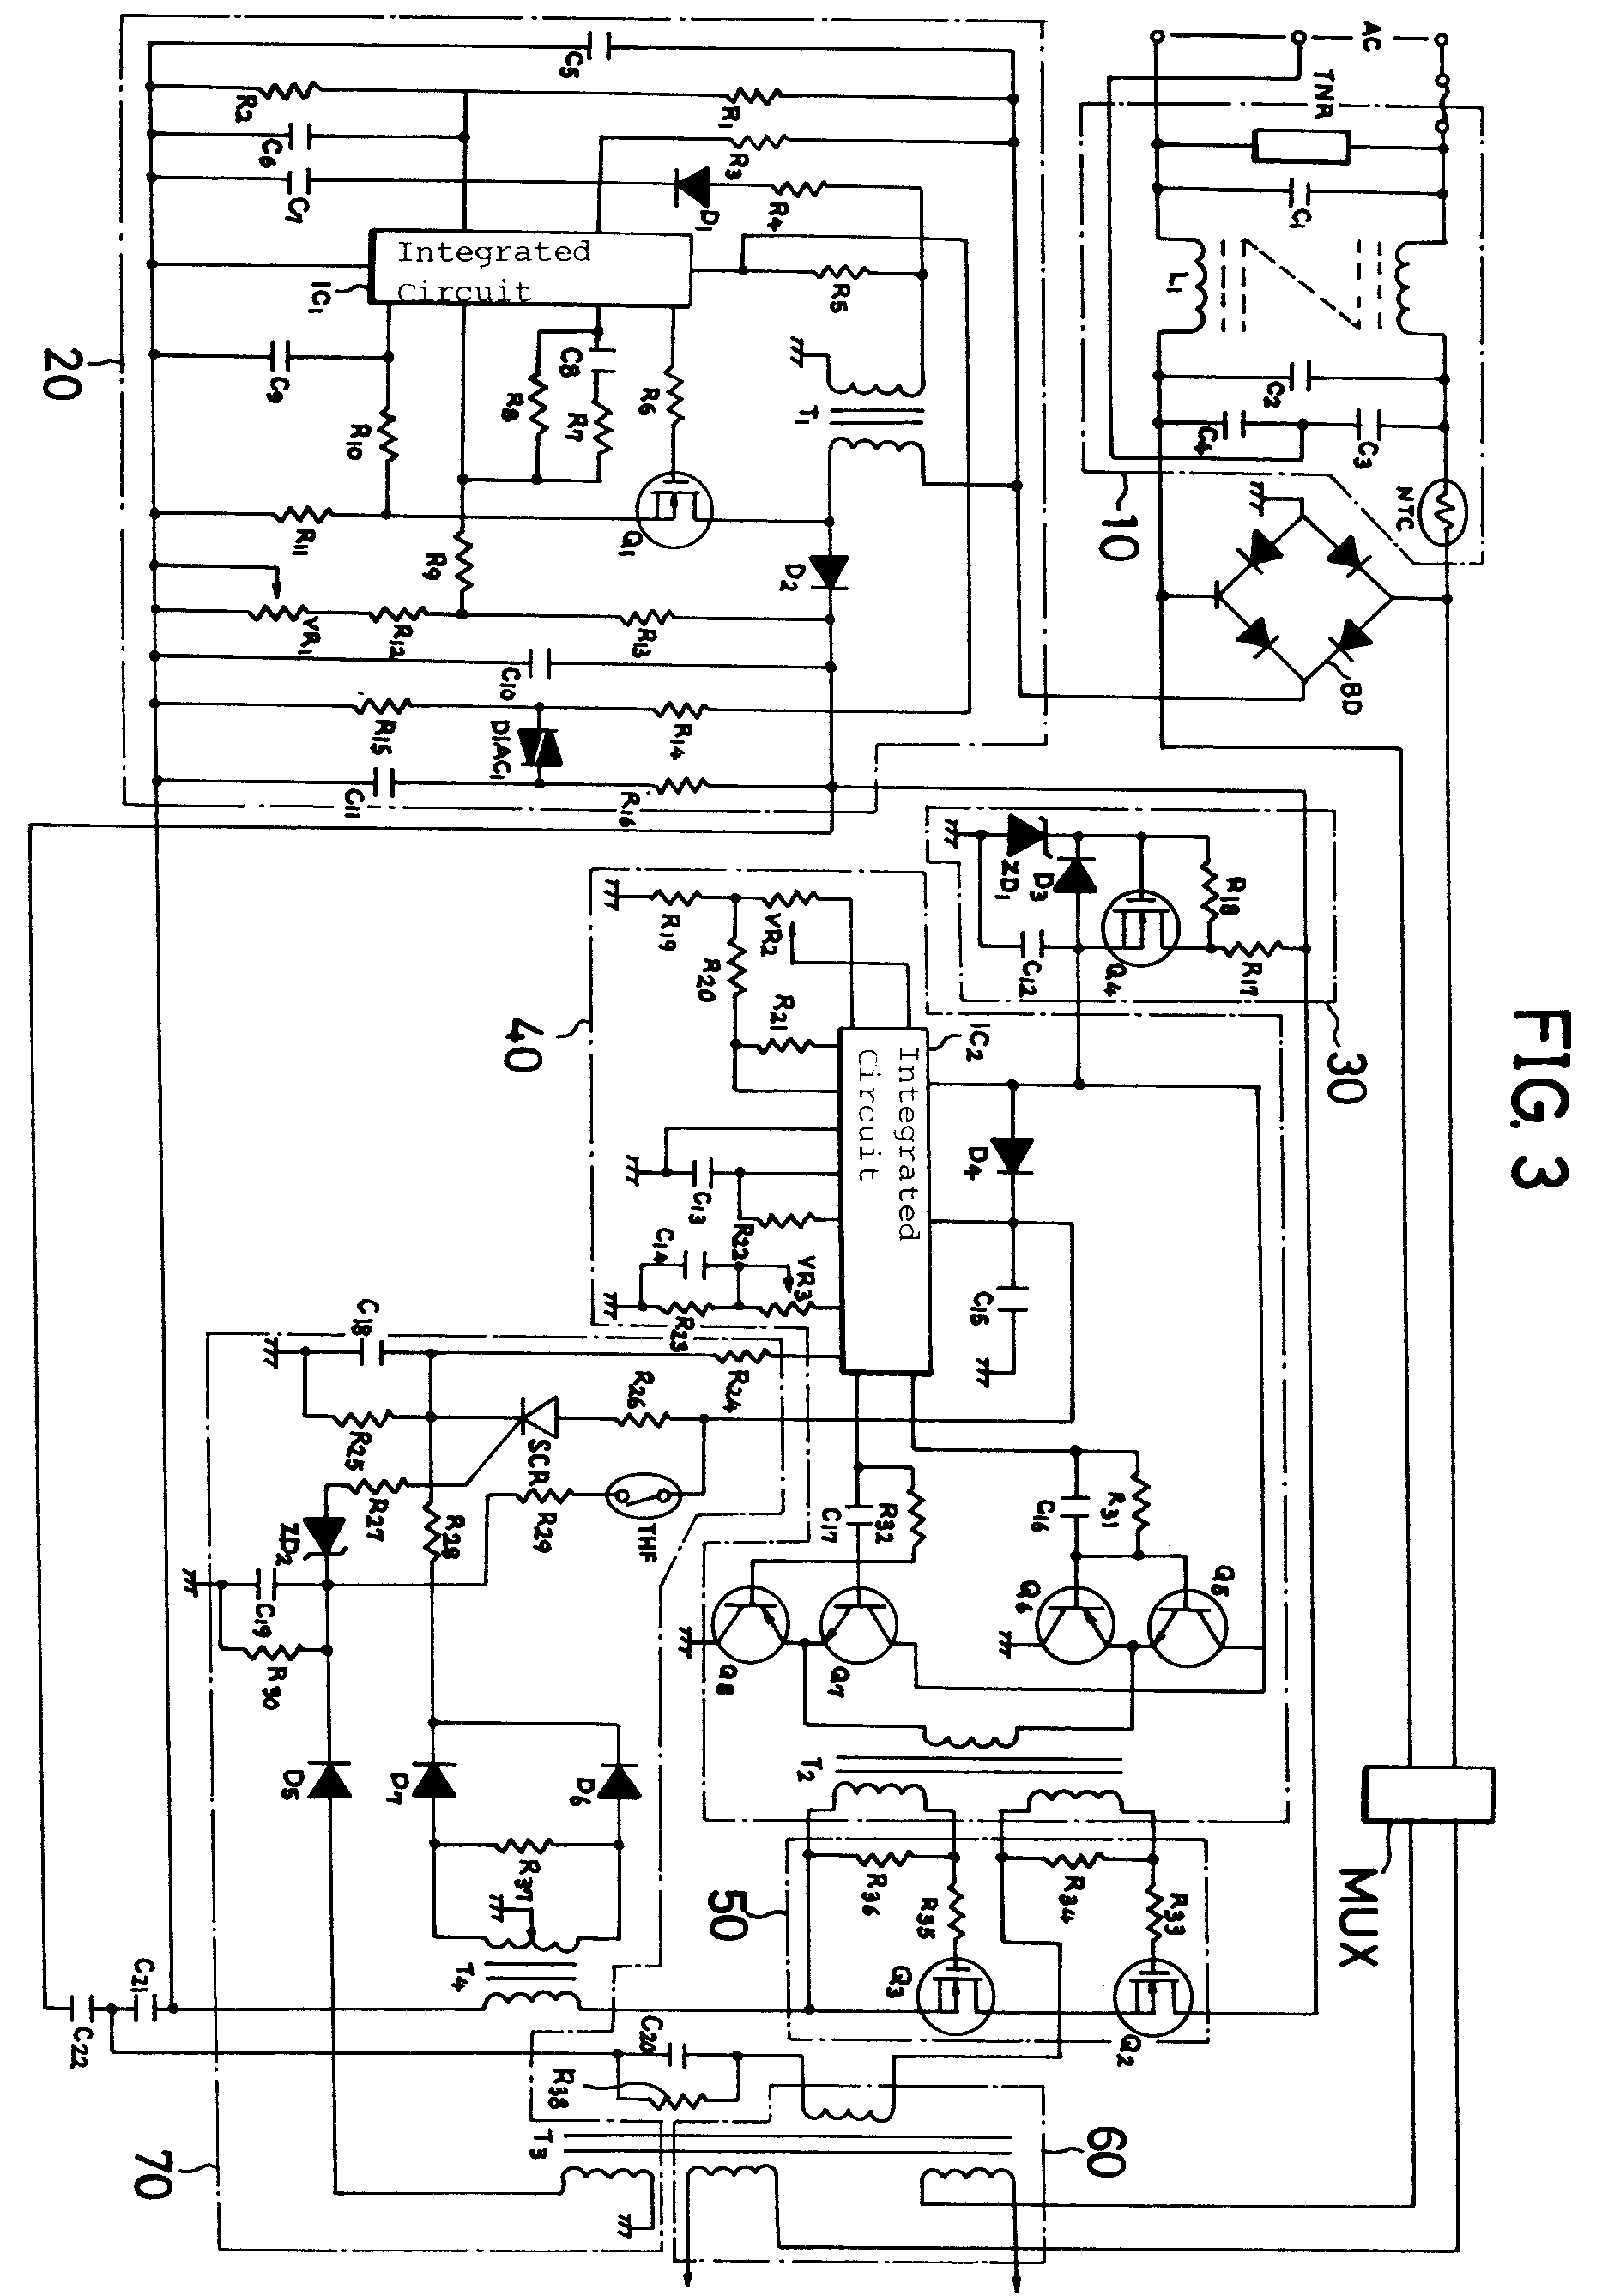 Circuit Diagram Of Sukam Inverter Basic Block Patent Ep0591576a1 An Ultrapowersaving Which